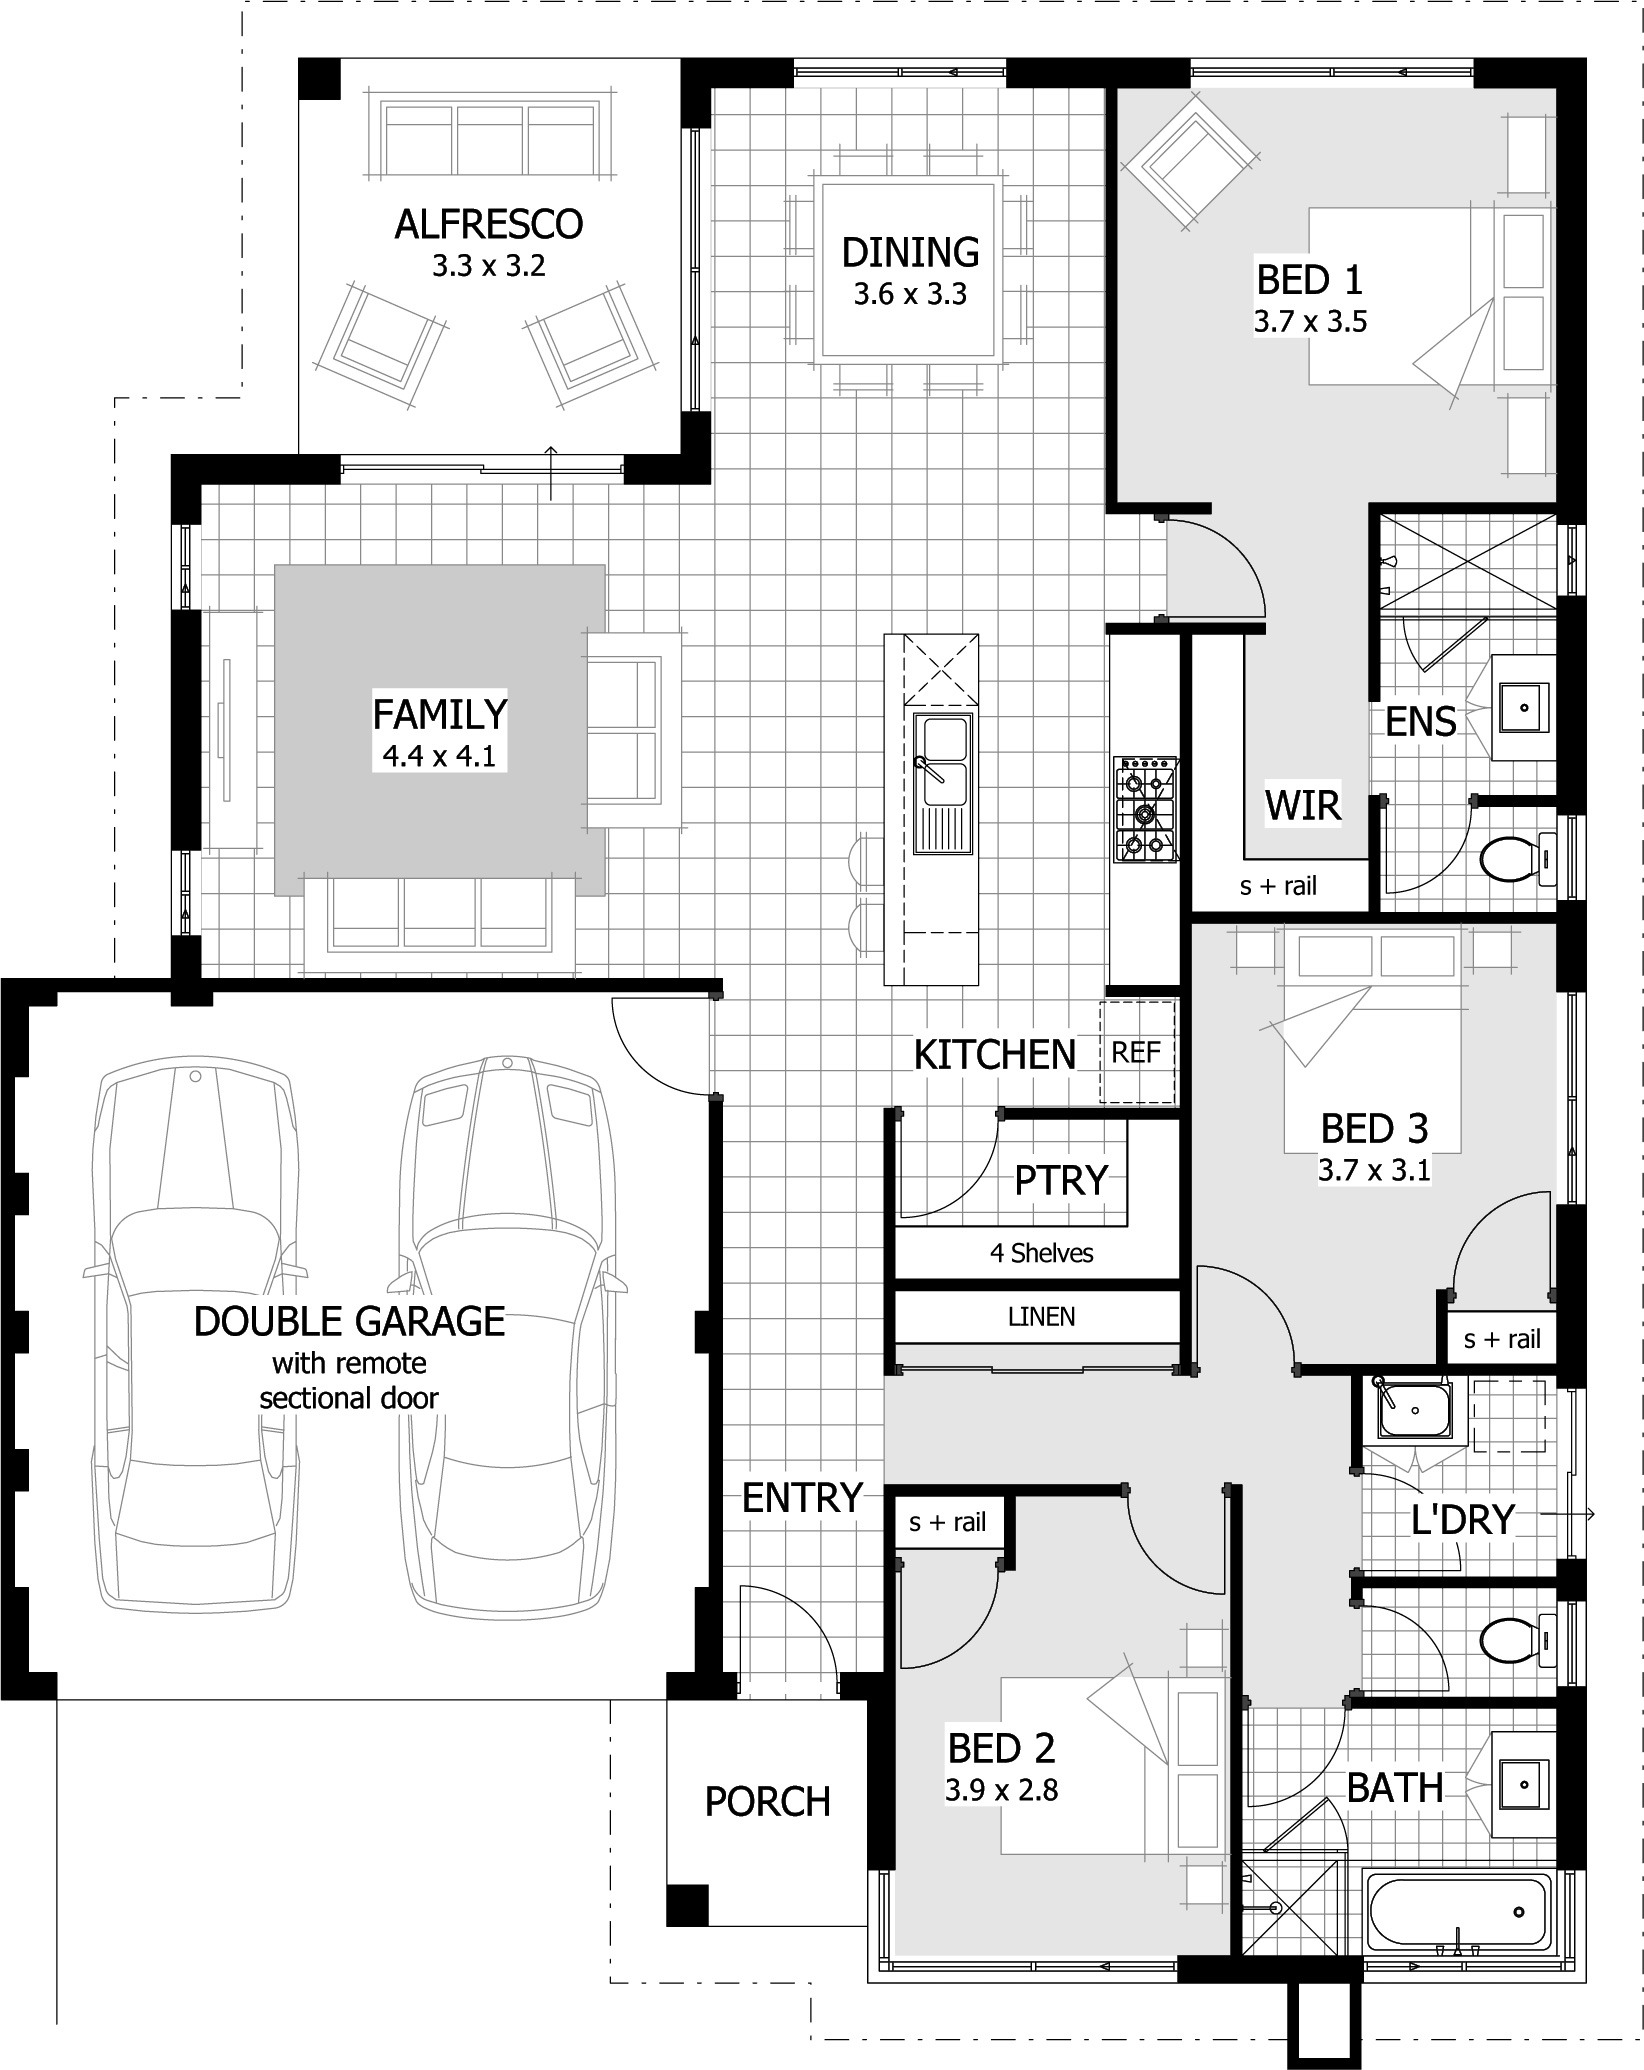 Four Bedroom House Floor Plans Best Of Bedroom House Plans Zimbabwe Home Ideas south Africa Ghana